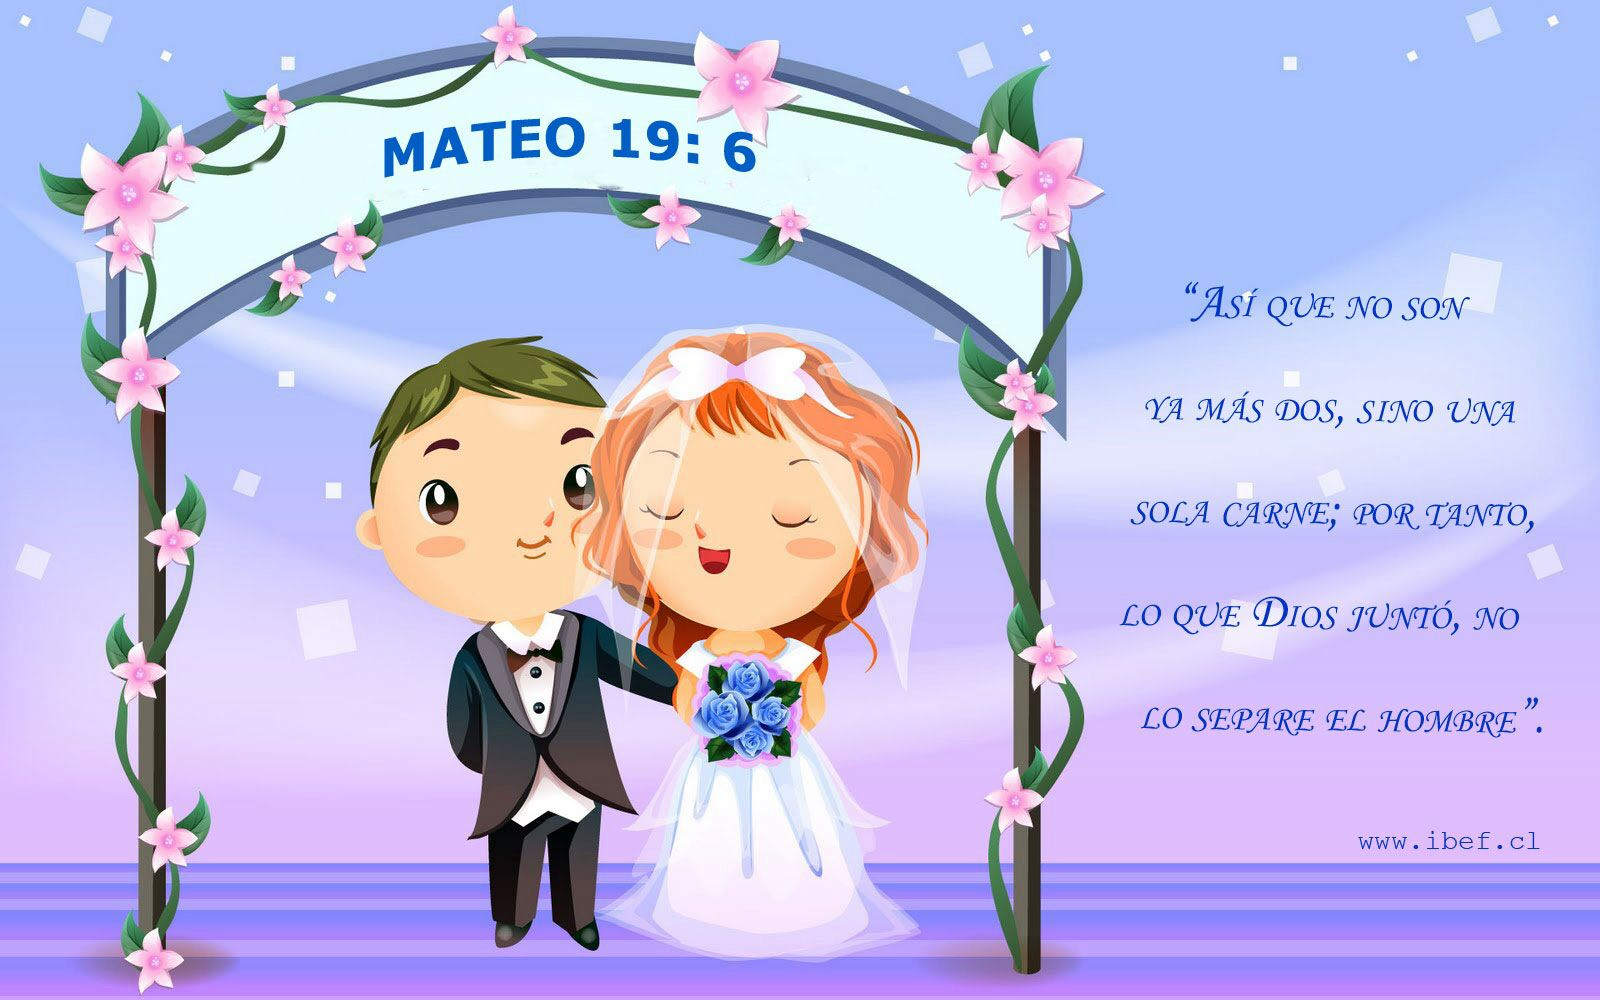 Lo Que Dios Unio Que No Lo Separe El Hombre Just Married Handmade Wedding Favours Wedding